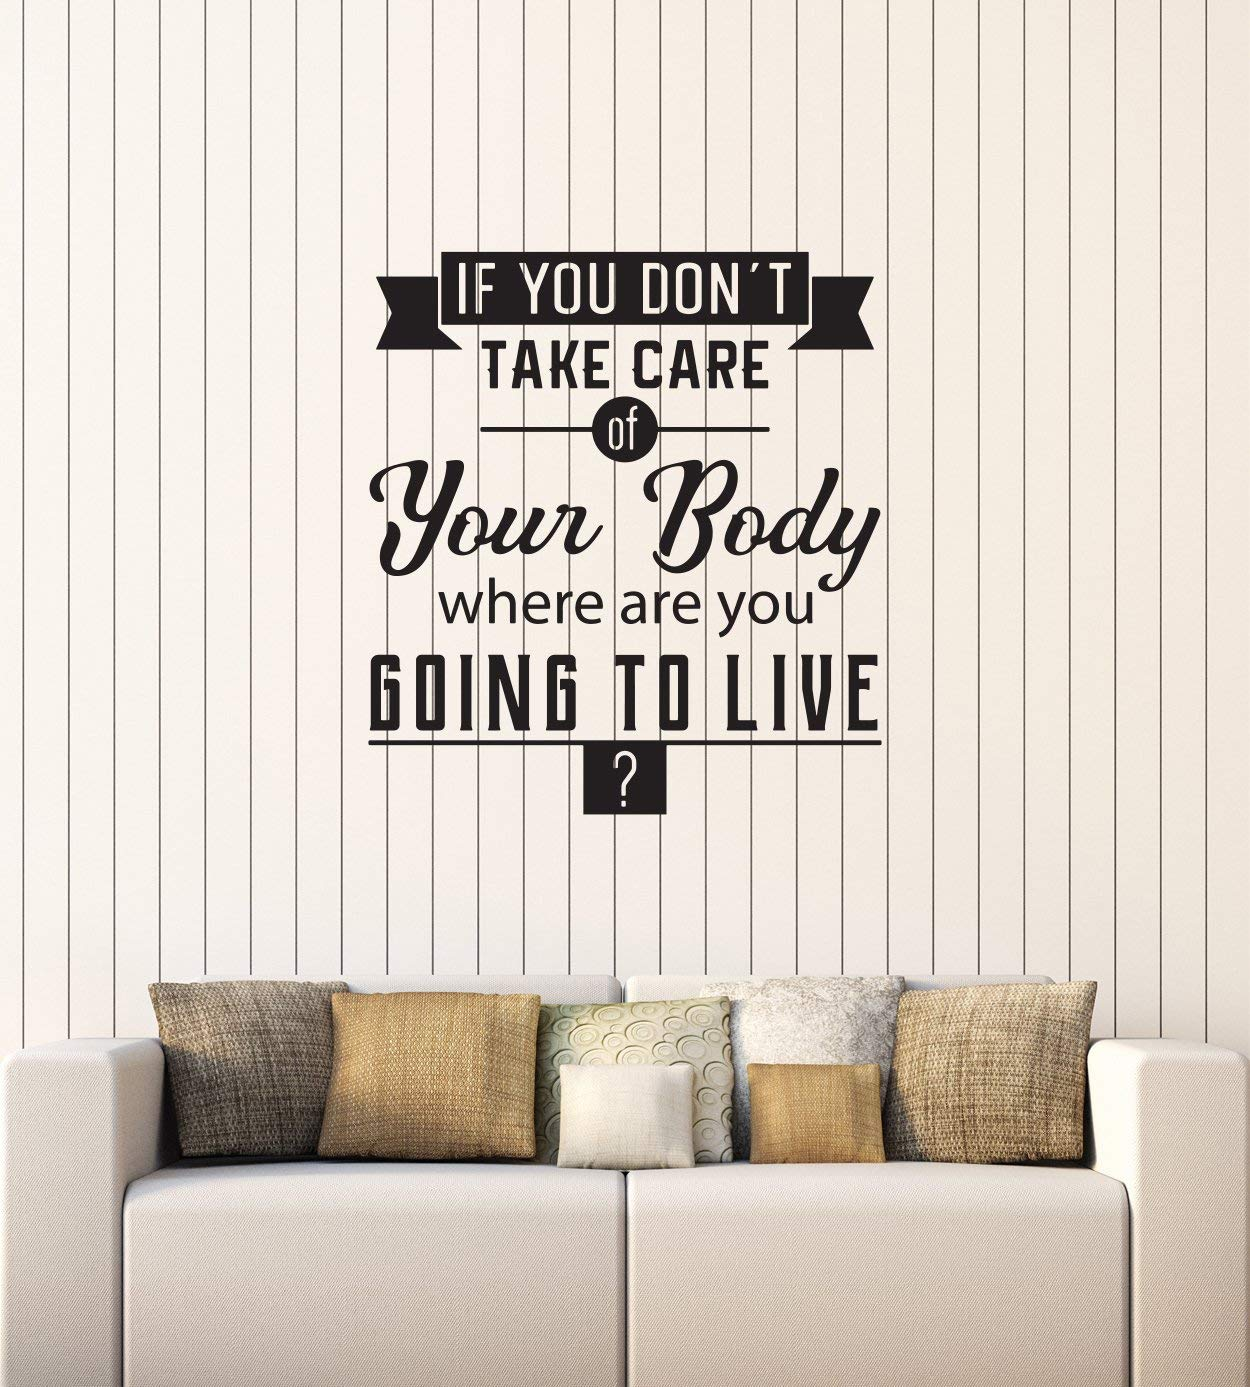 Vinyl Wall Decal Healthy Quote Spa Salon Gym Medical Office Interior Stickers Mural Large Decor (ig5742) black